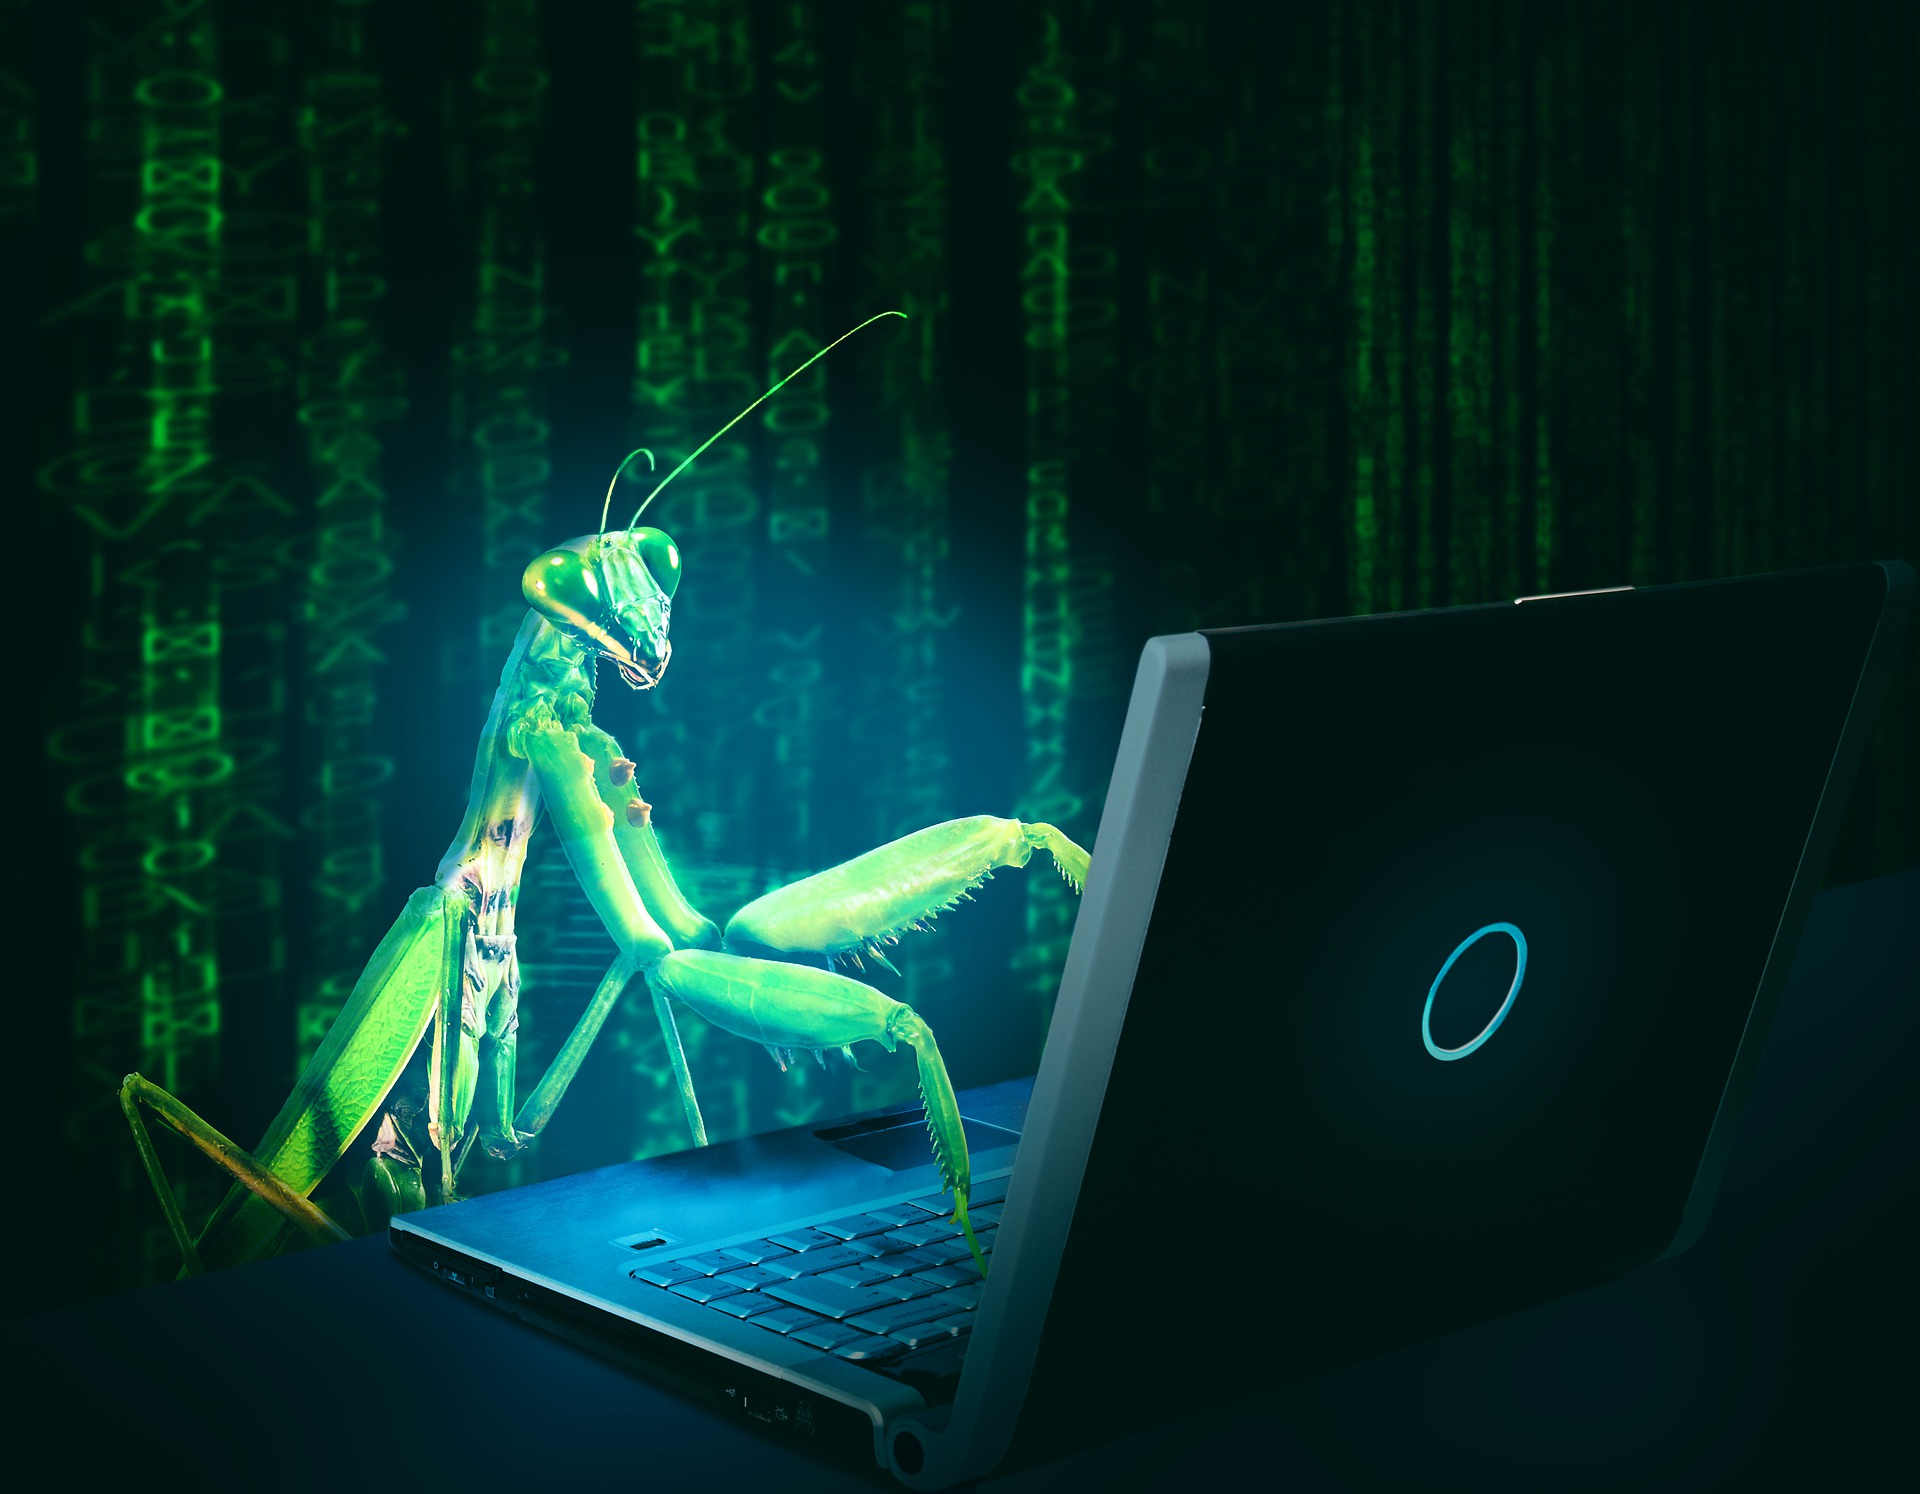 While perhaps a bug is not literally taking over your computer, like in this image, having a malware infection can feel like it!